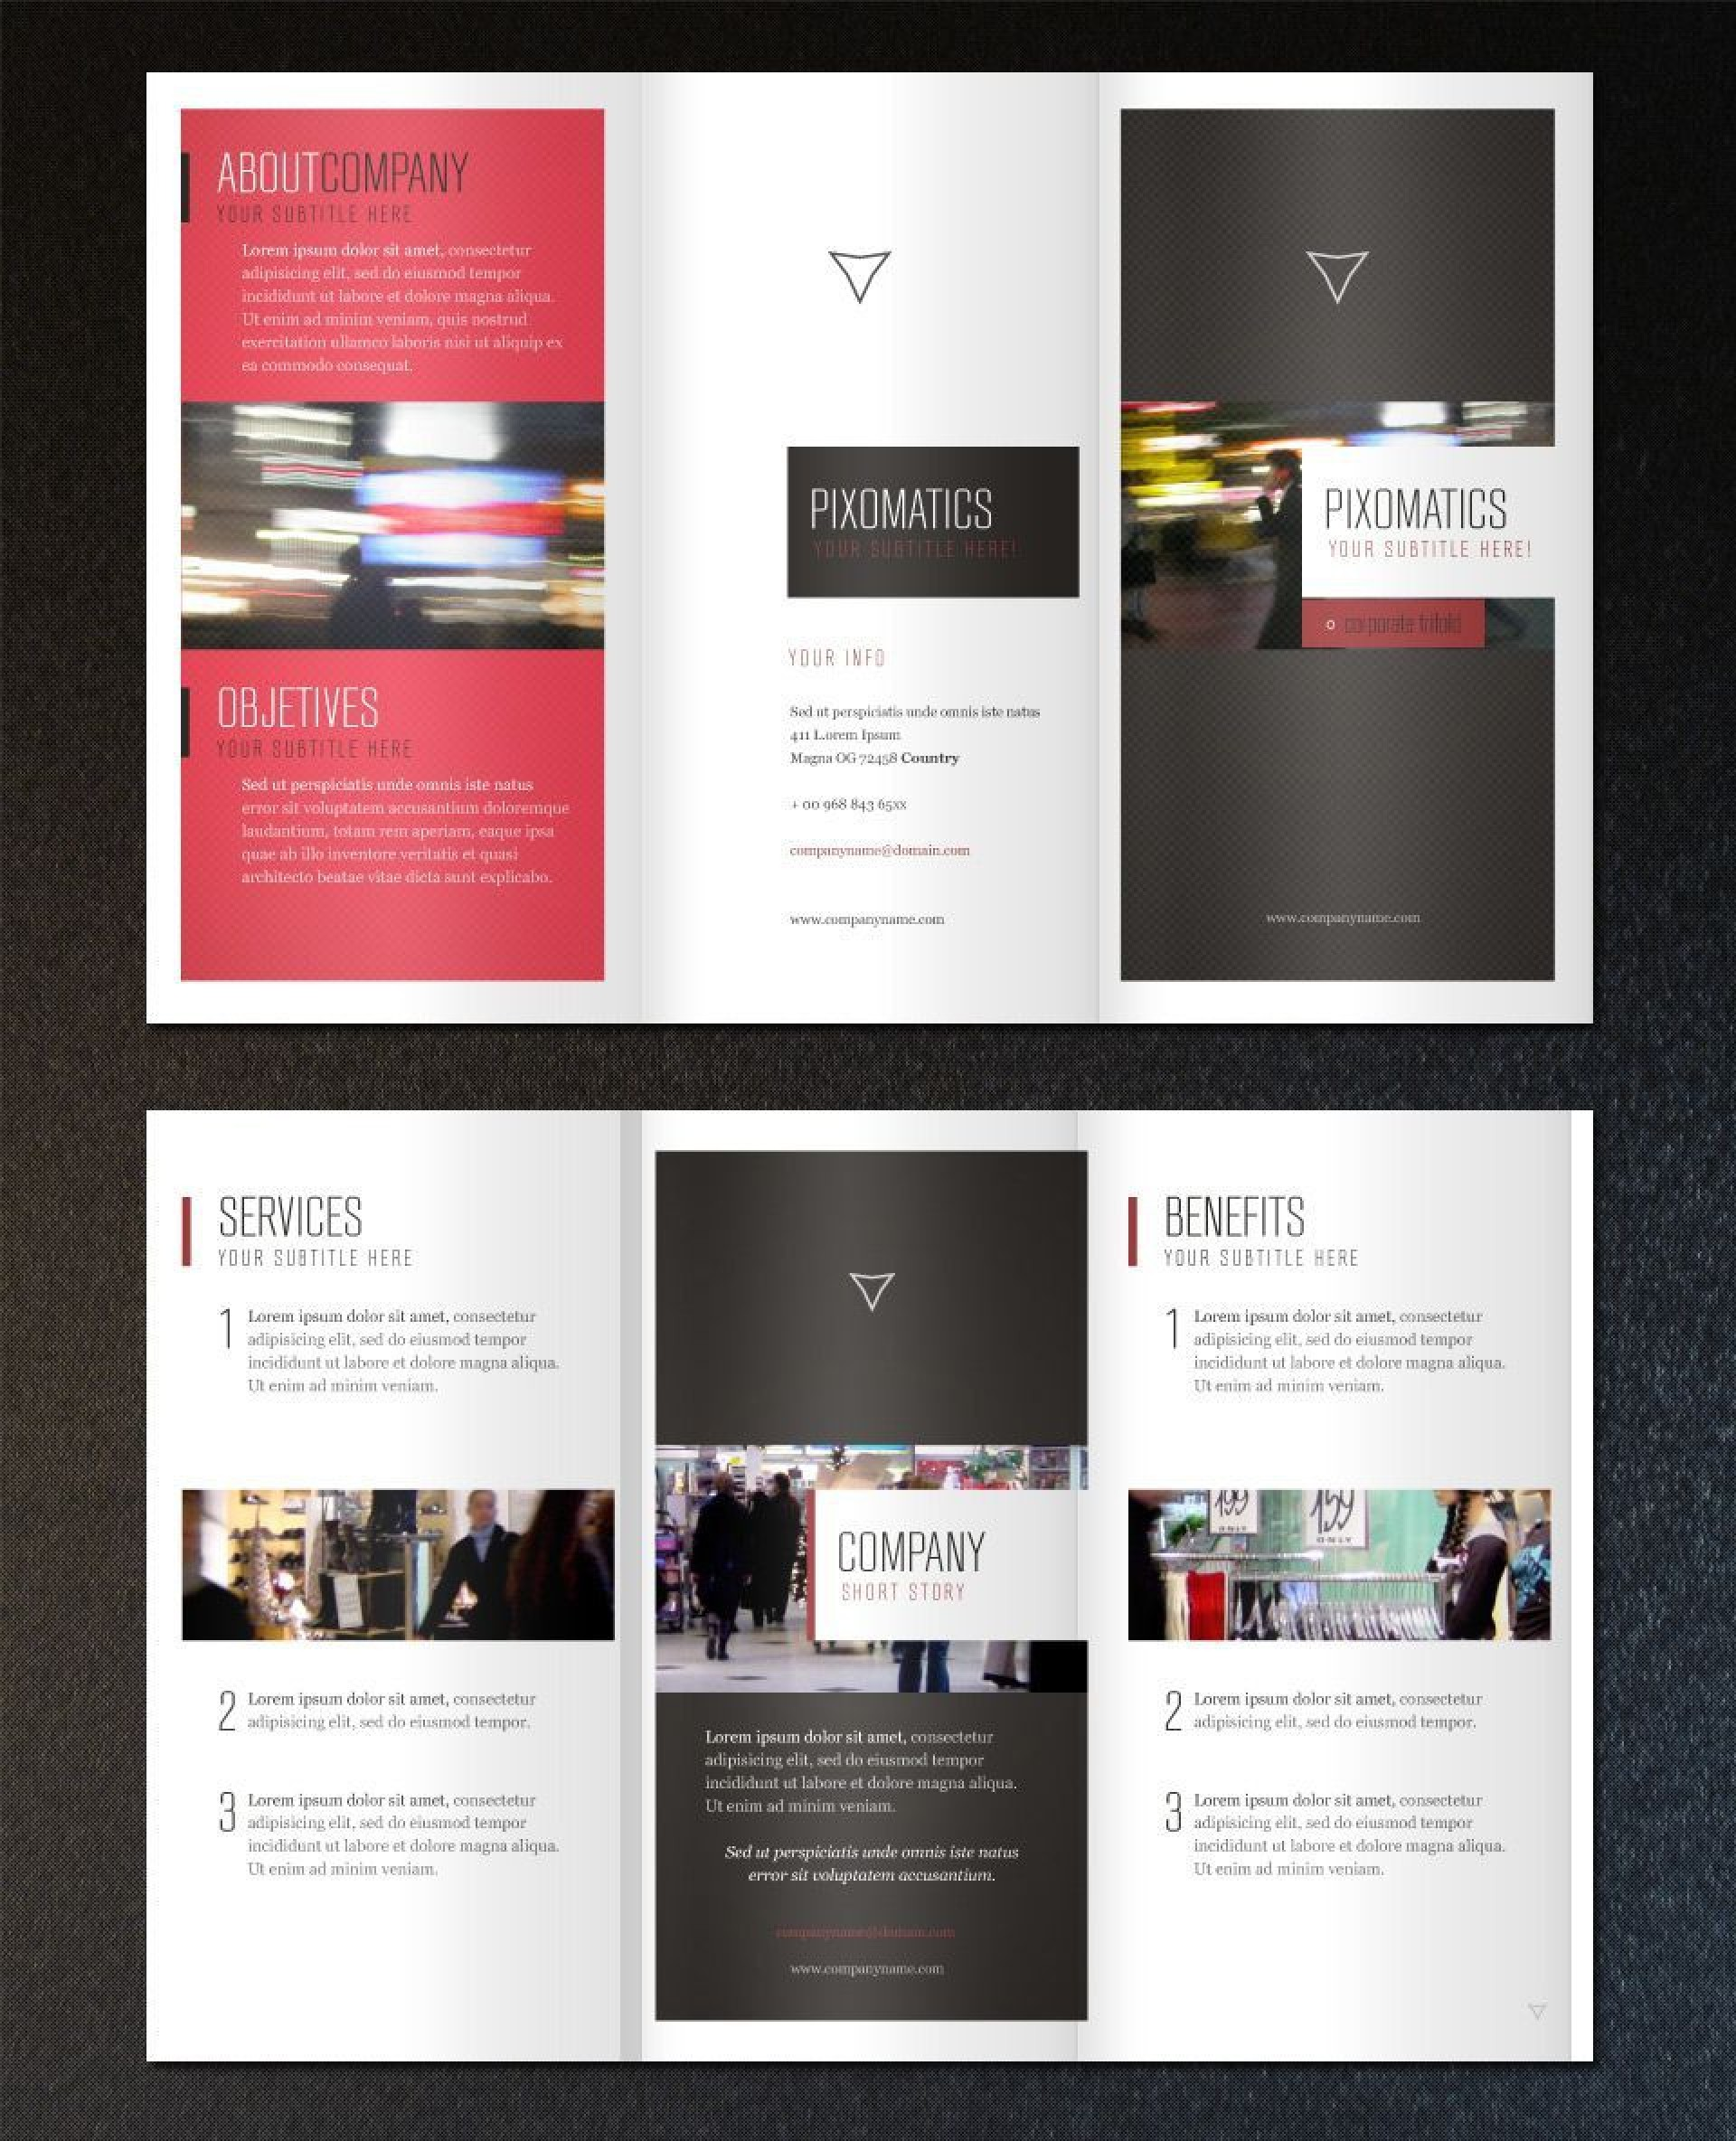 001 Unbelievable Template For Trifold Brochure Picture  Tri Fold Indesign A4 Free In Word Download1920